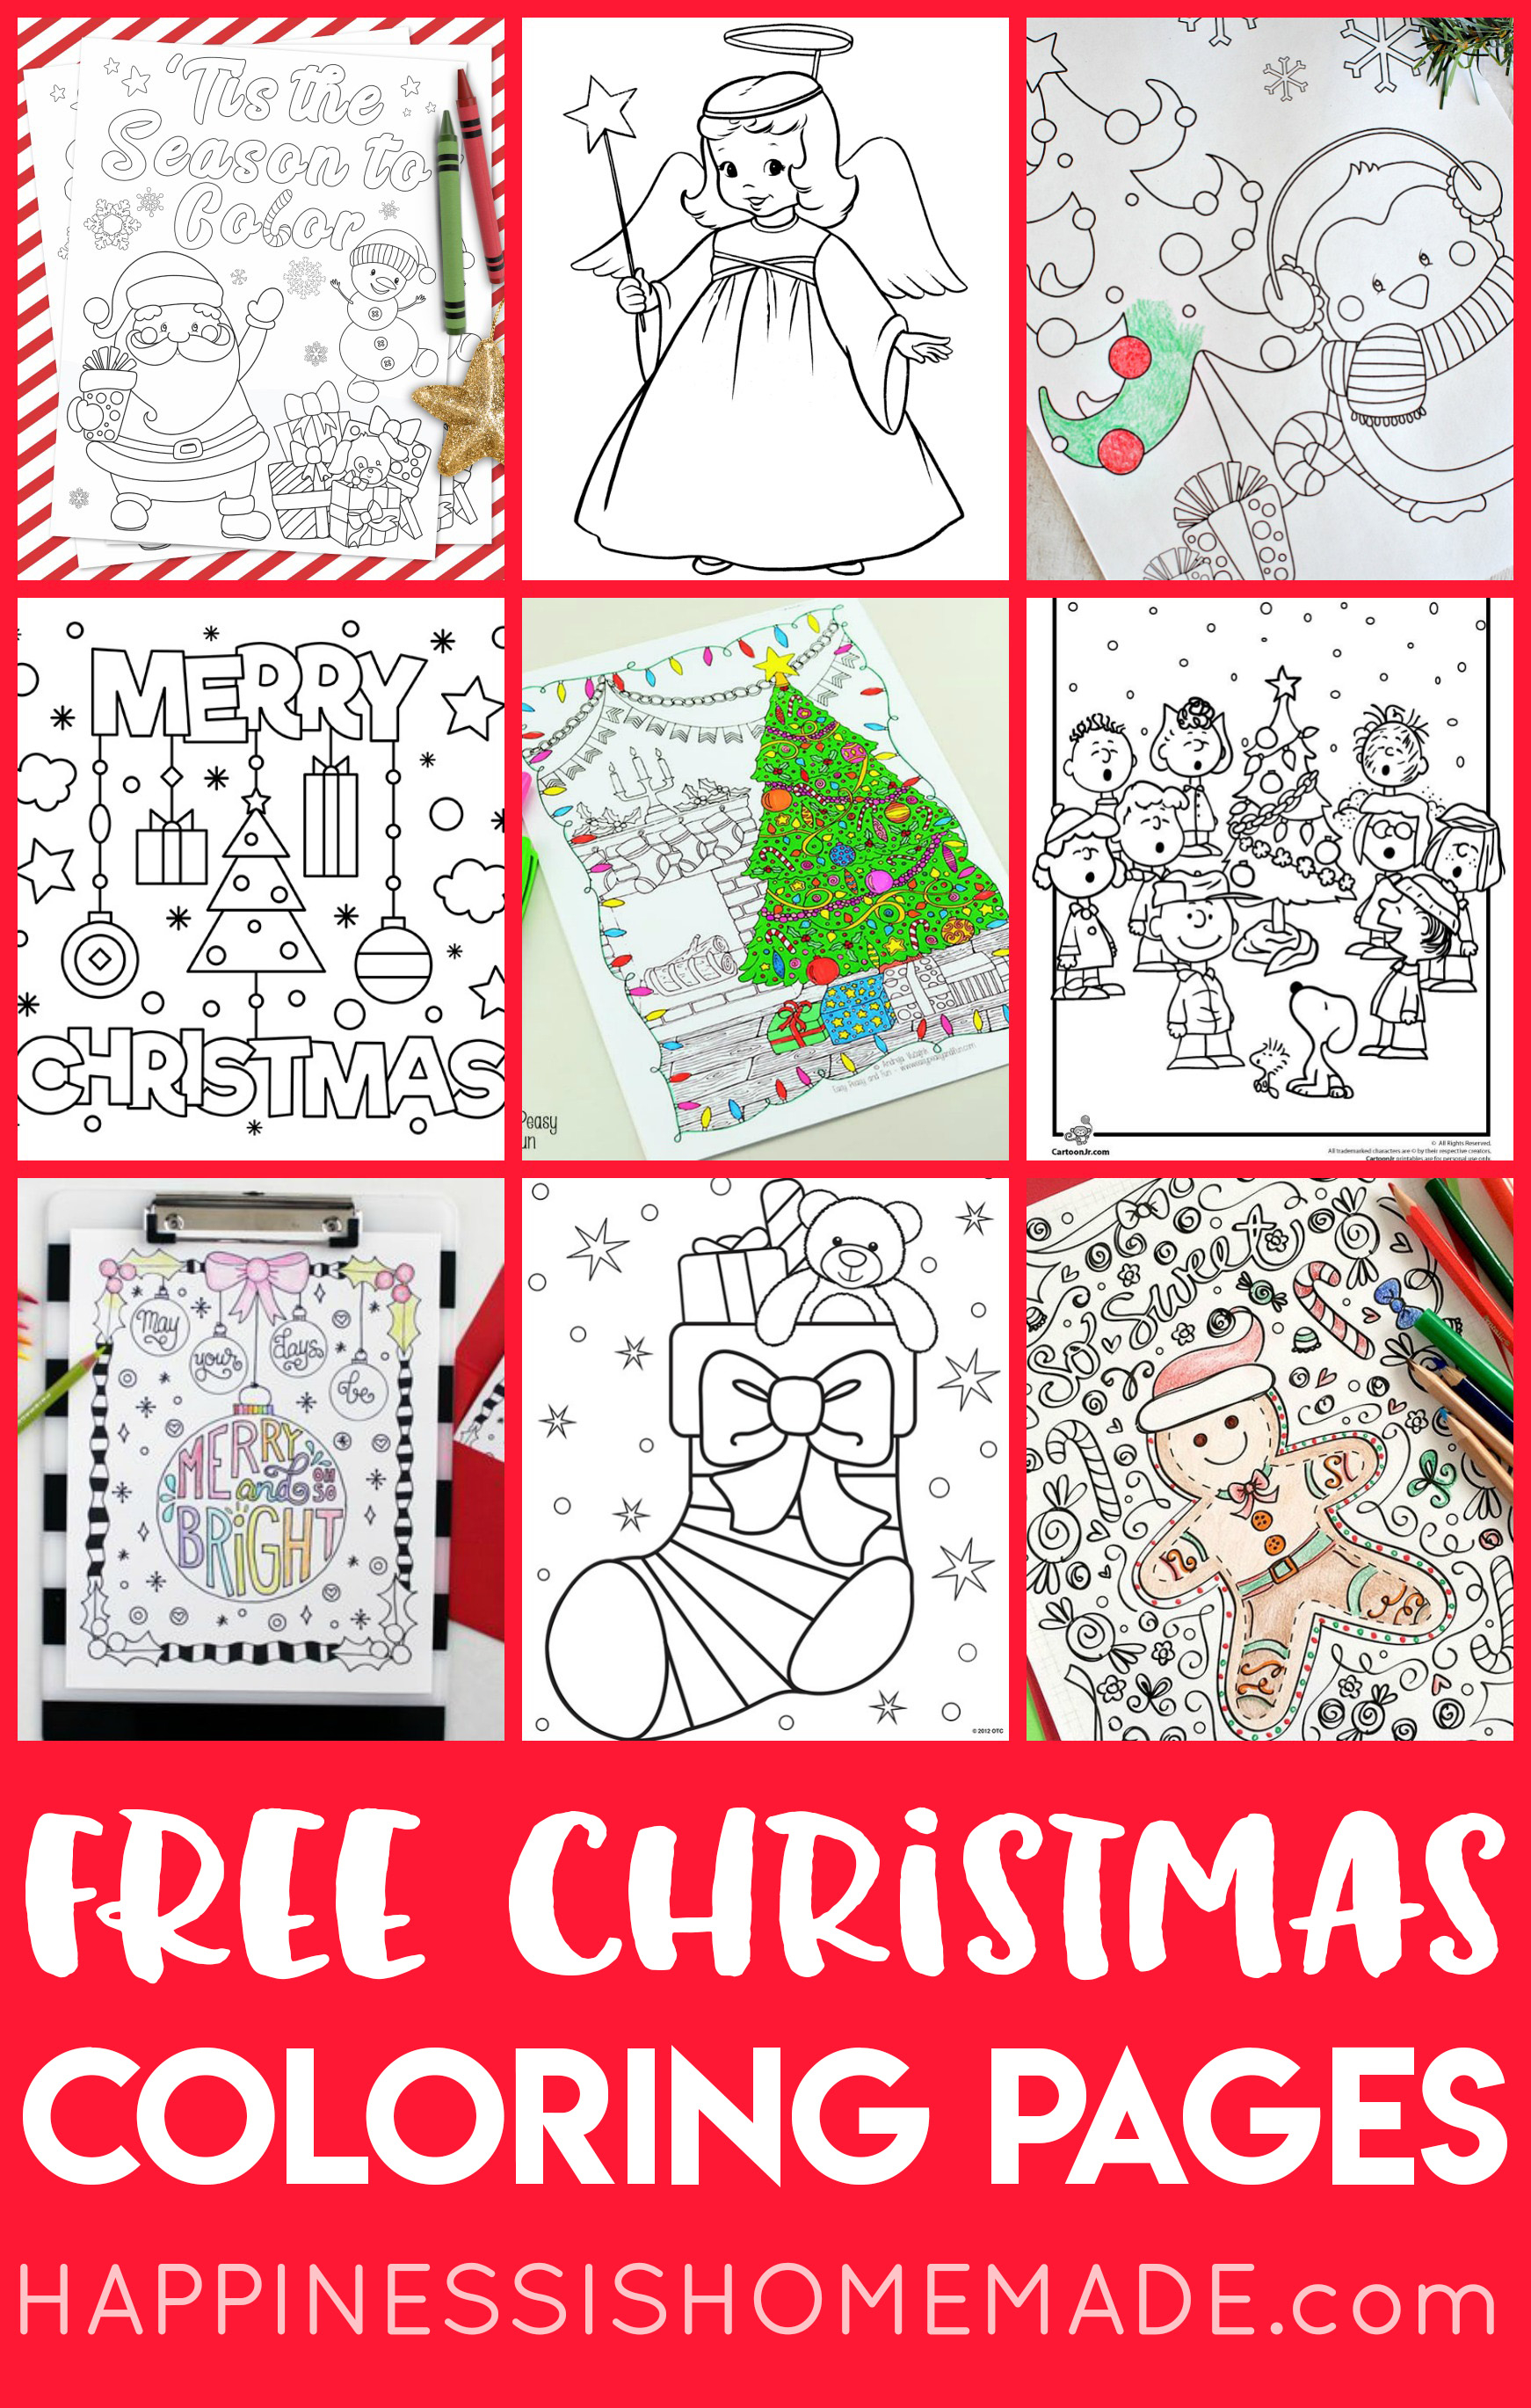 Christmas Coloring Pages To Print Free Free Christmas Coloring Pages For Adults And Kids Happiness Is